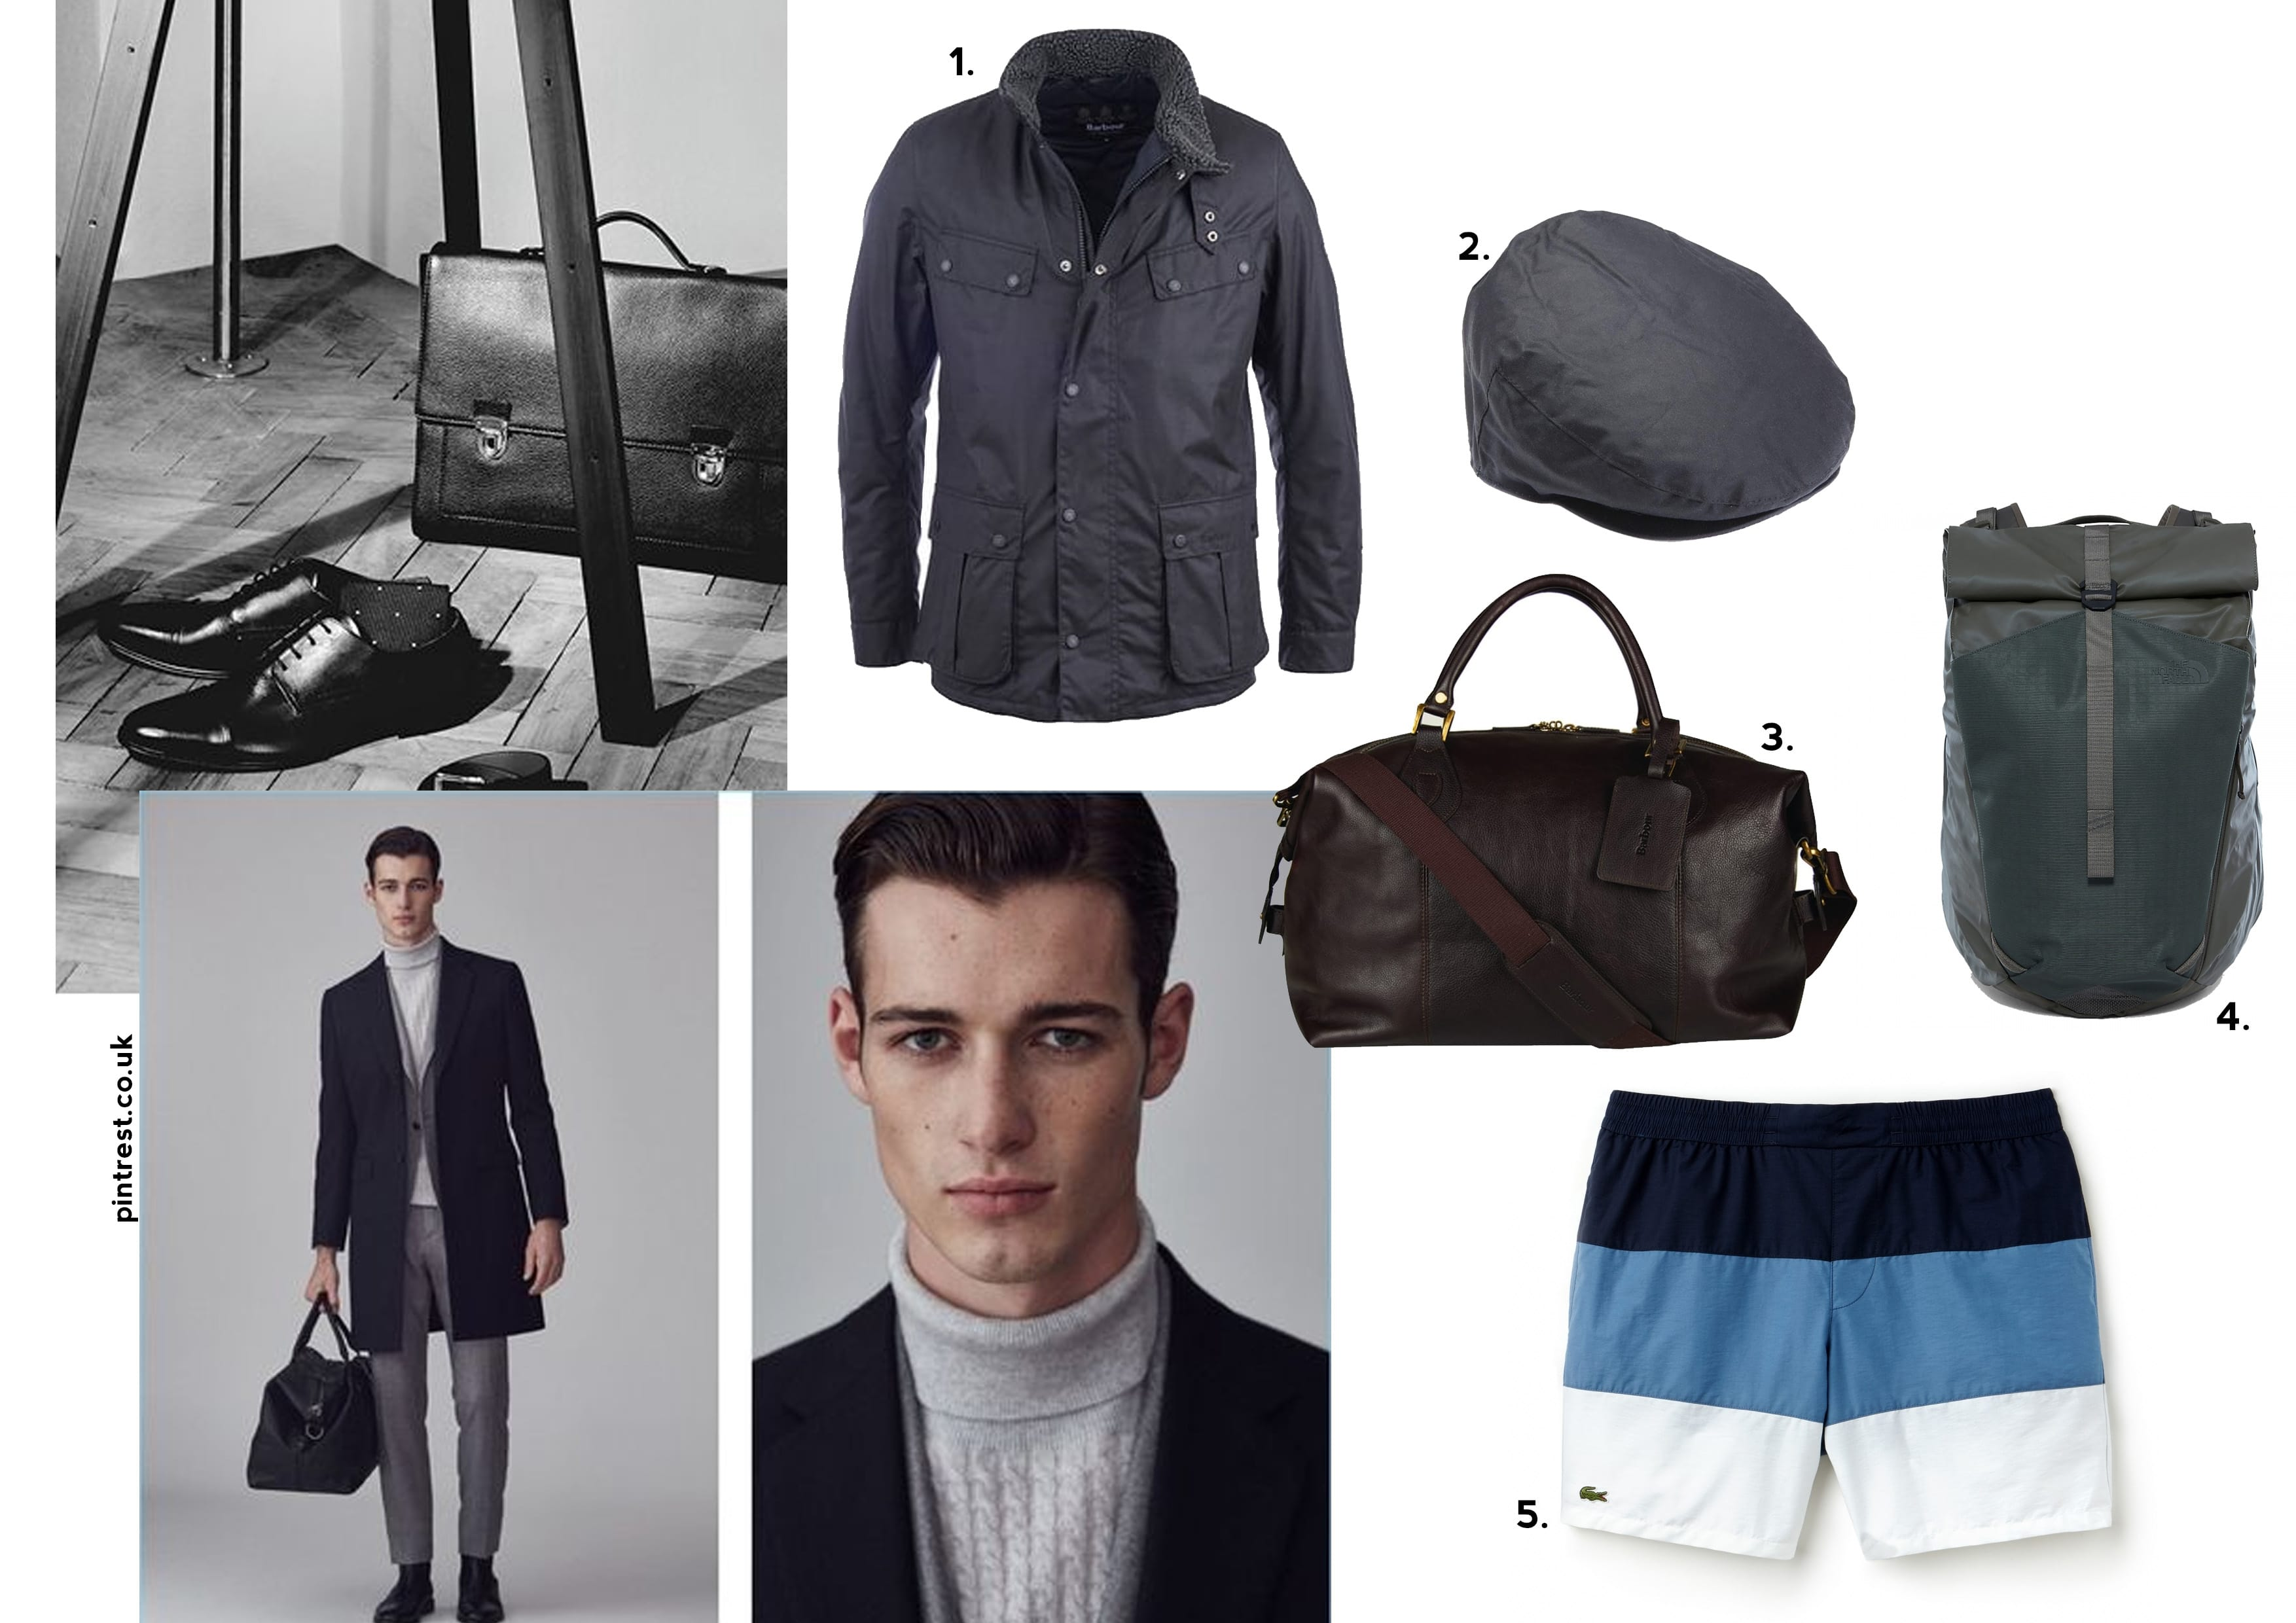 JP, MIC, Made in Chelsea, Fathers Day 2018, Gift Guide, Style Guide, Celebrity, Style Savvy, Father of the year 2018, Hunter, Barbour, Lacoste, The North Face